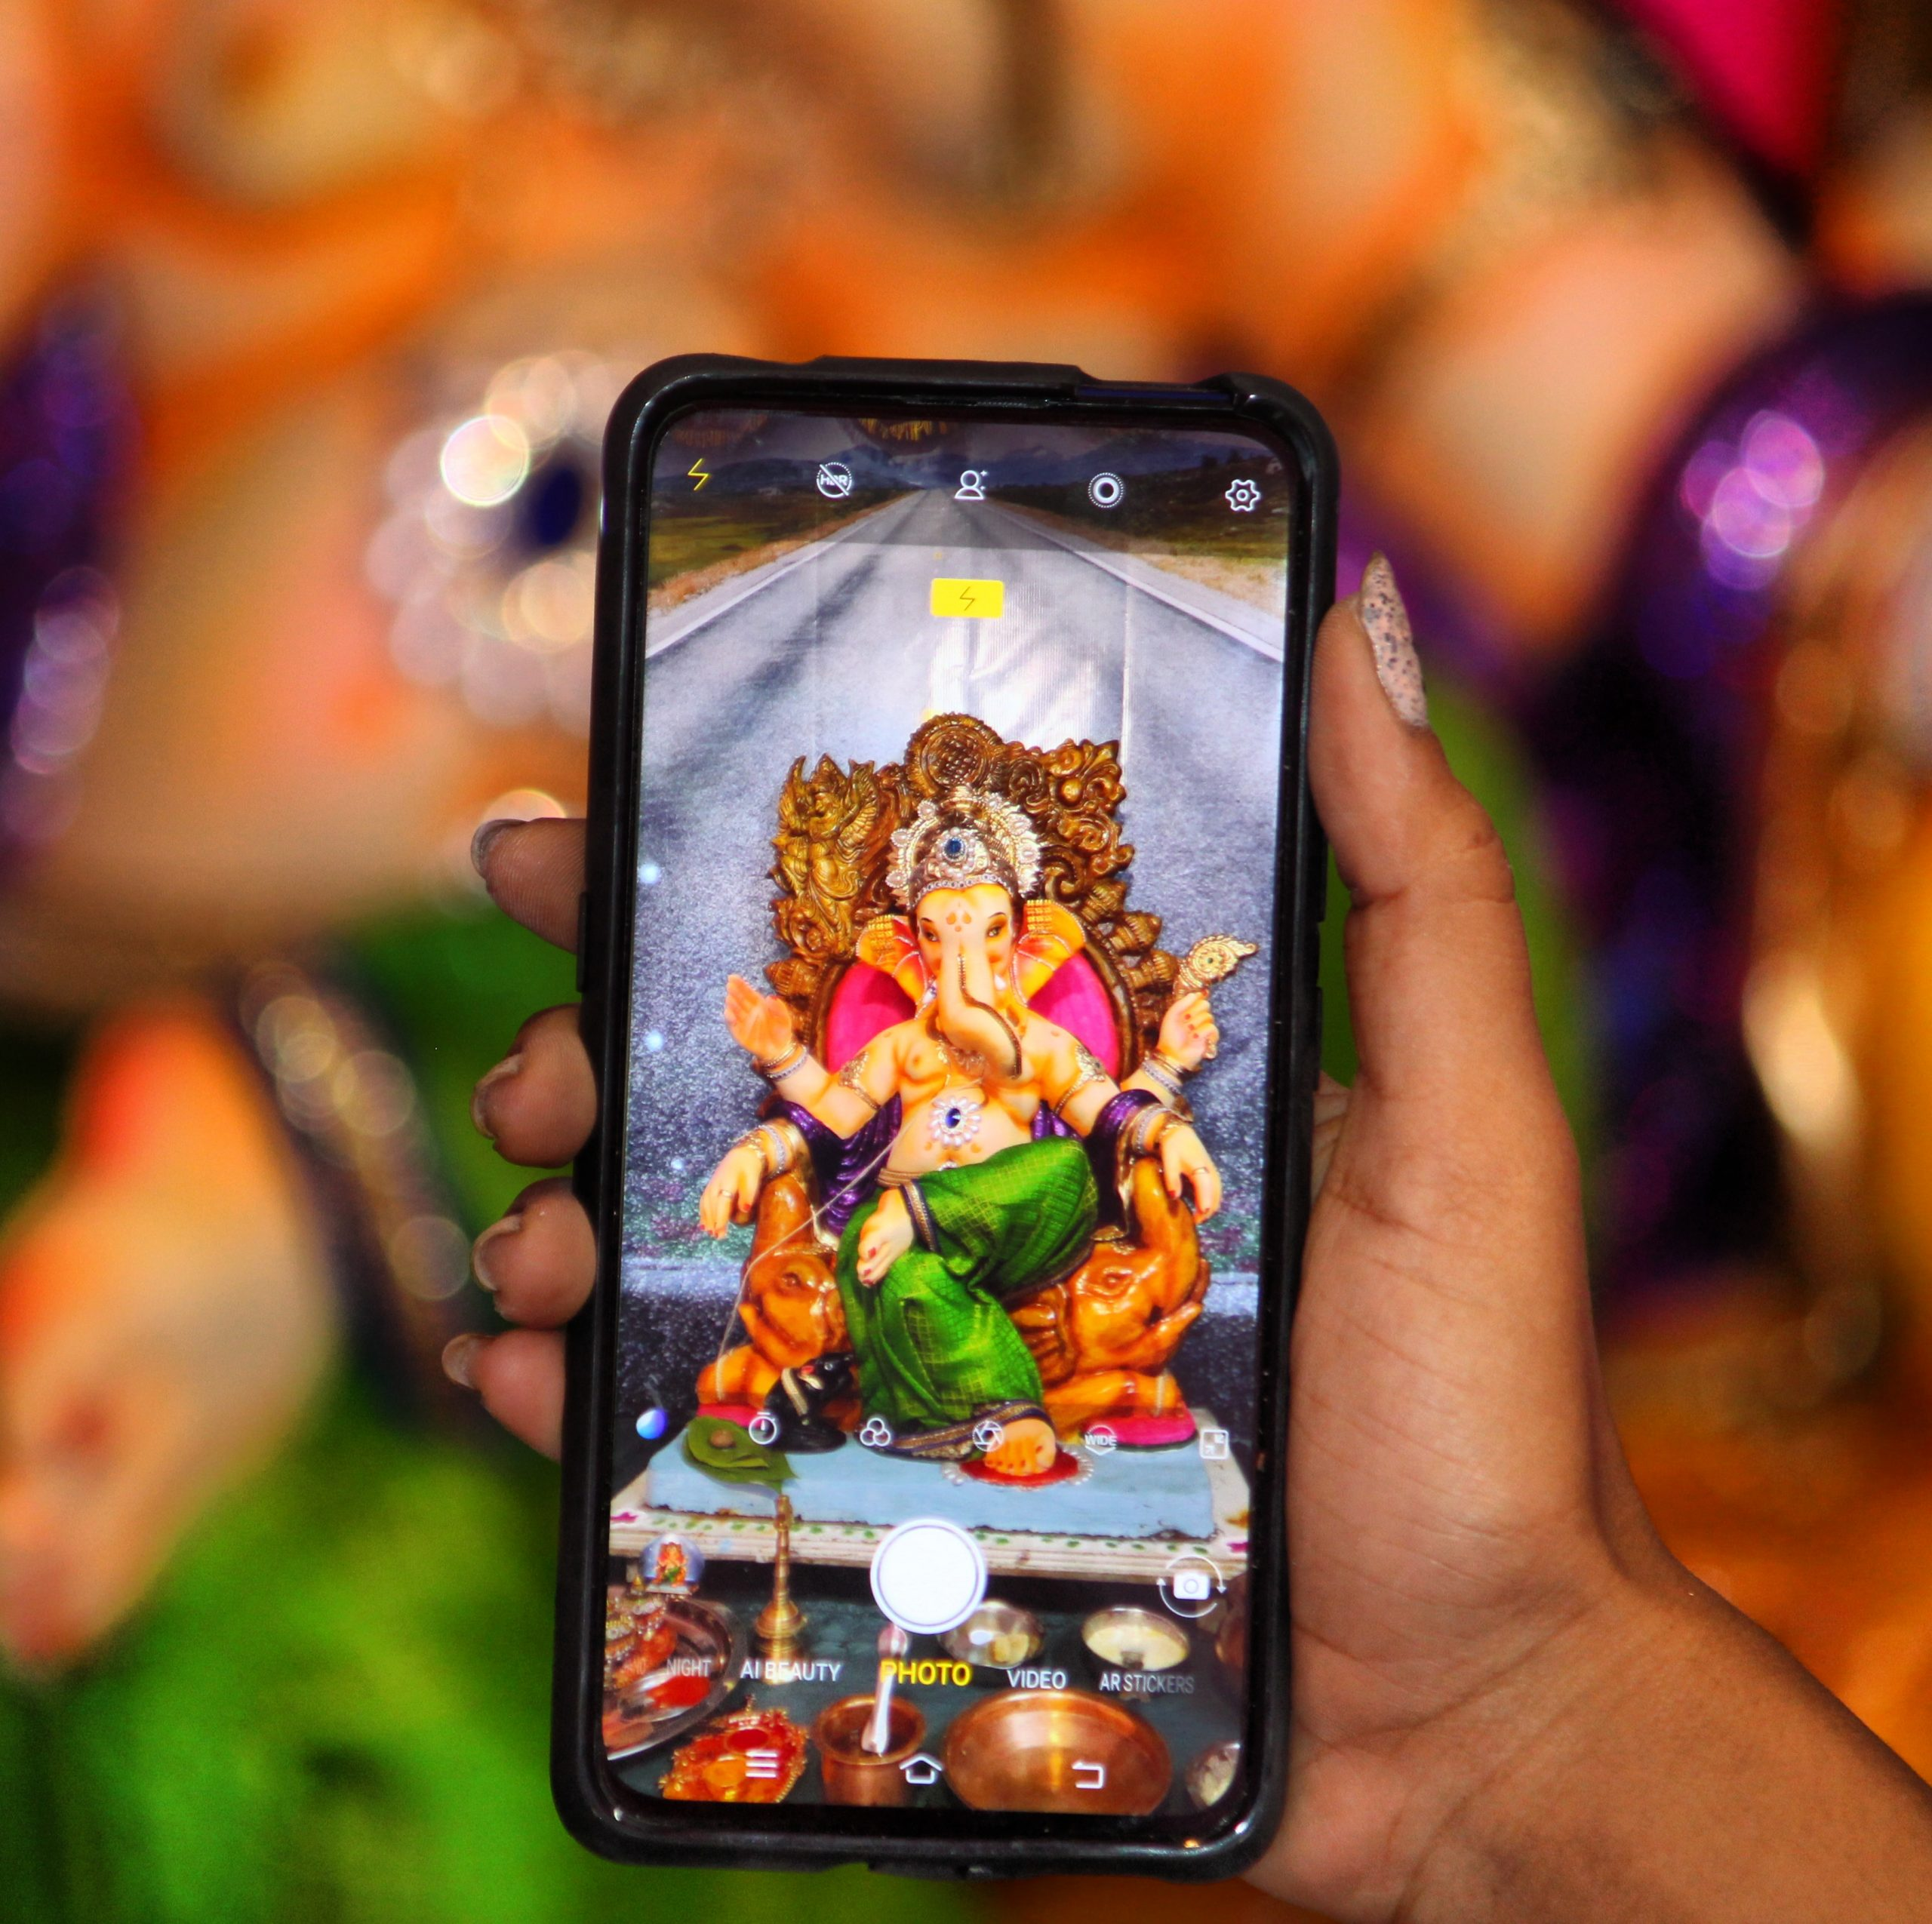 Lord Ganesh picture in phone